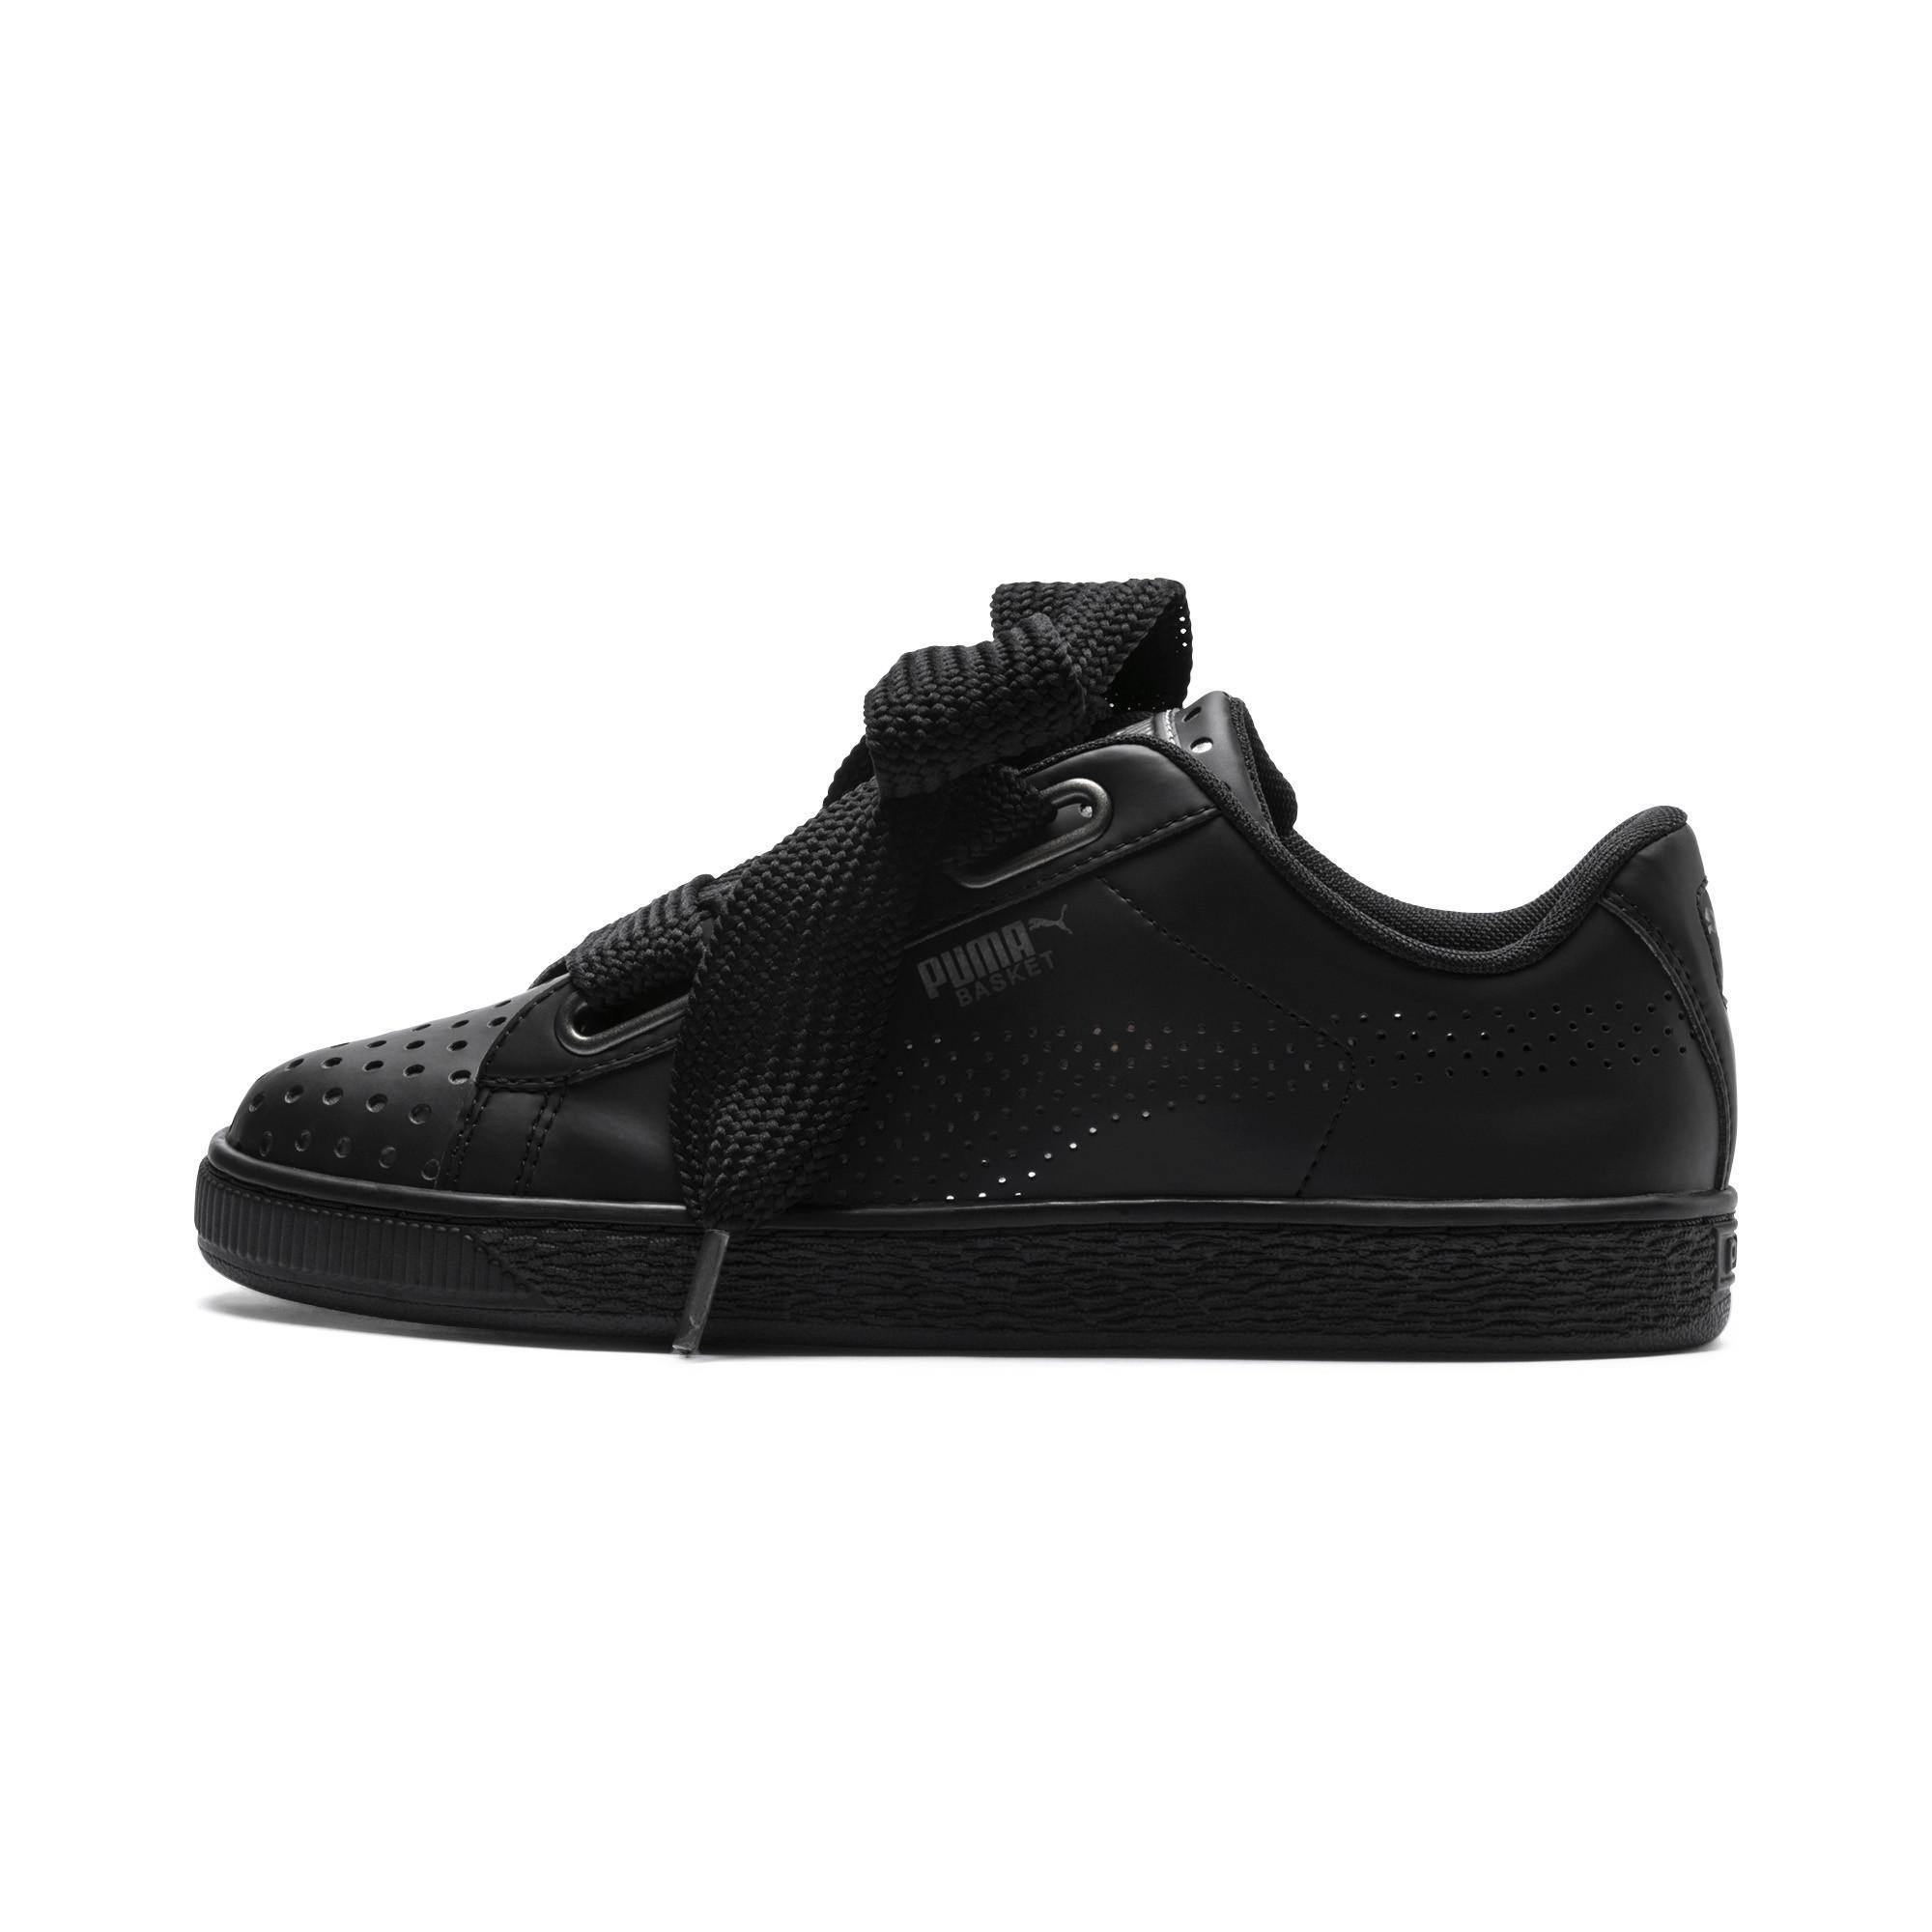 ec9198853693 Lyst - PUMA Basket Heart Lux Women s Sneakers in Black